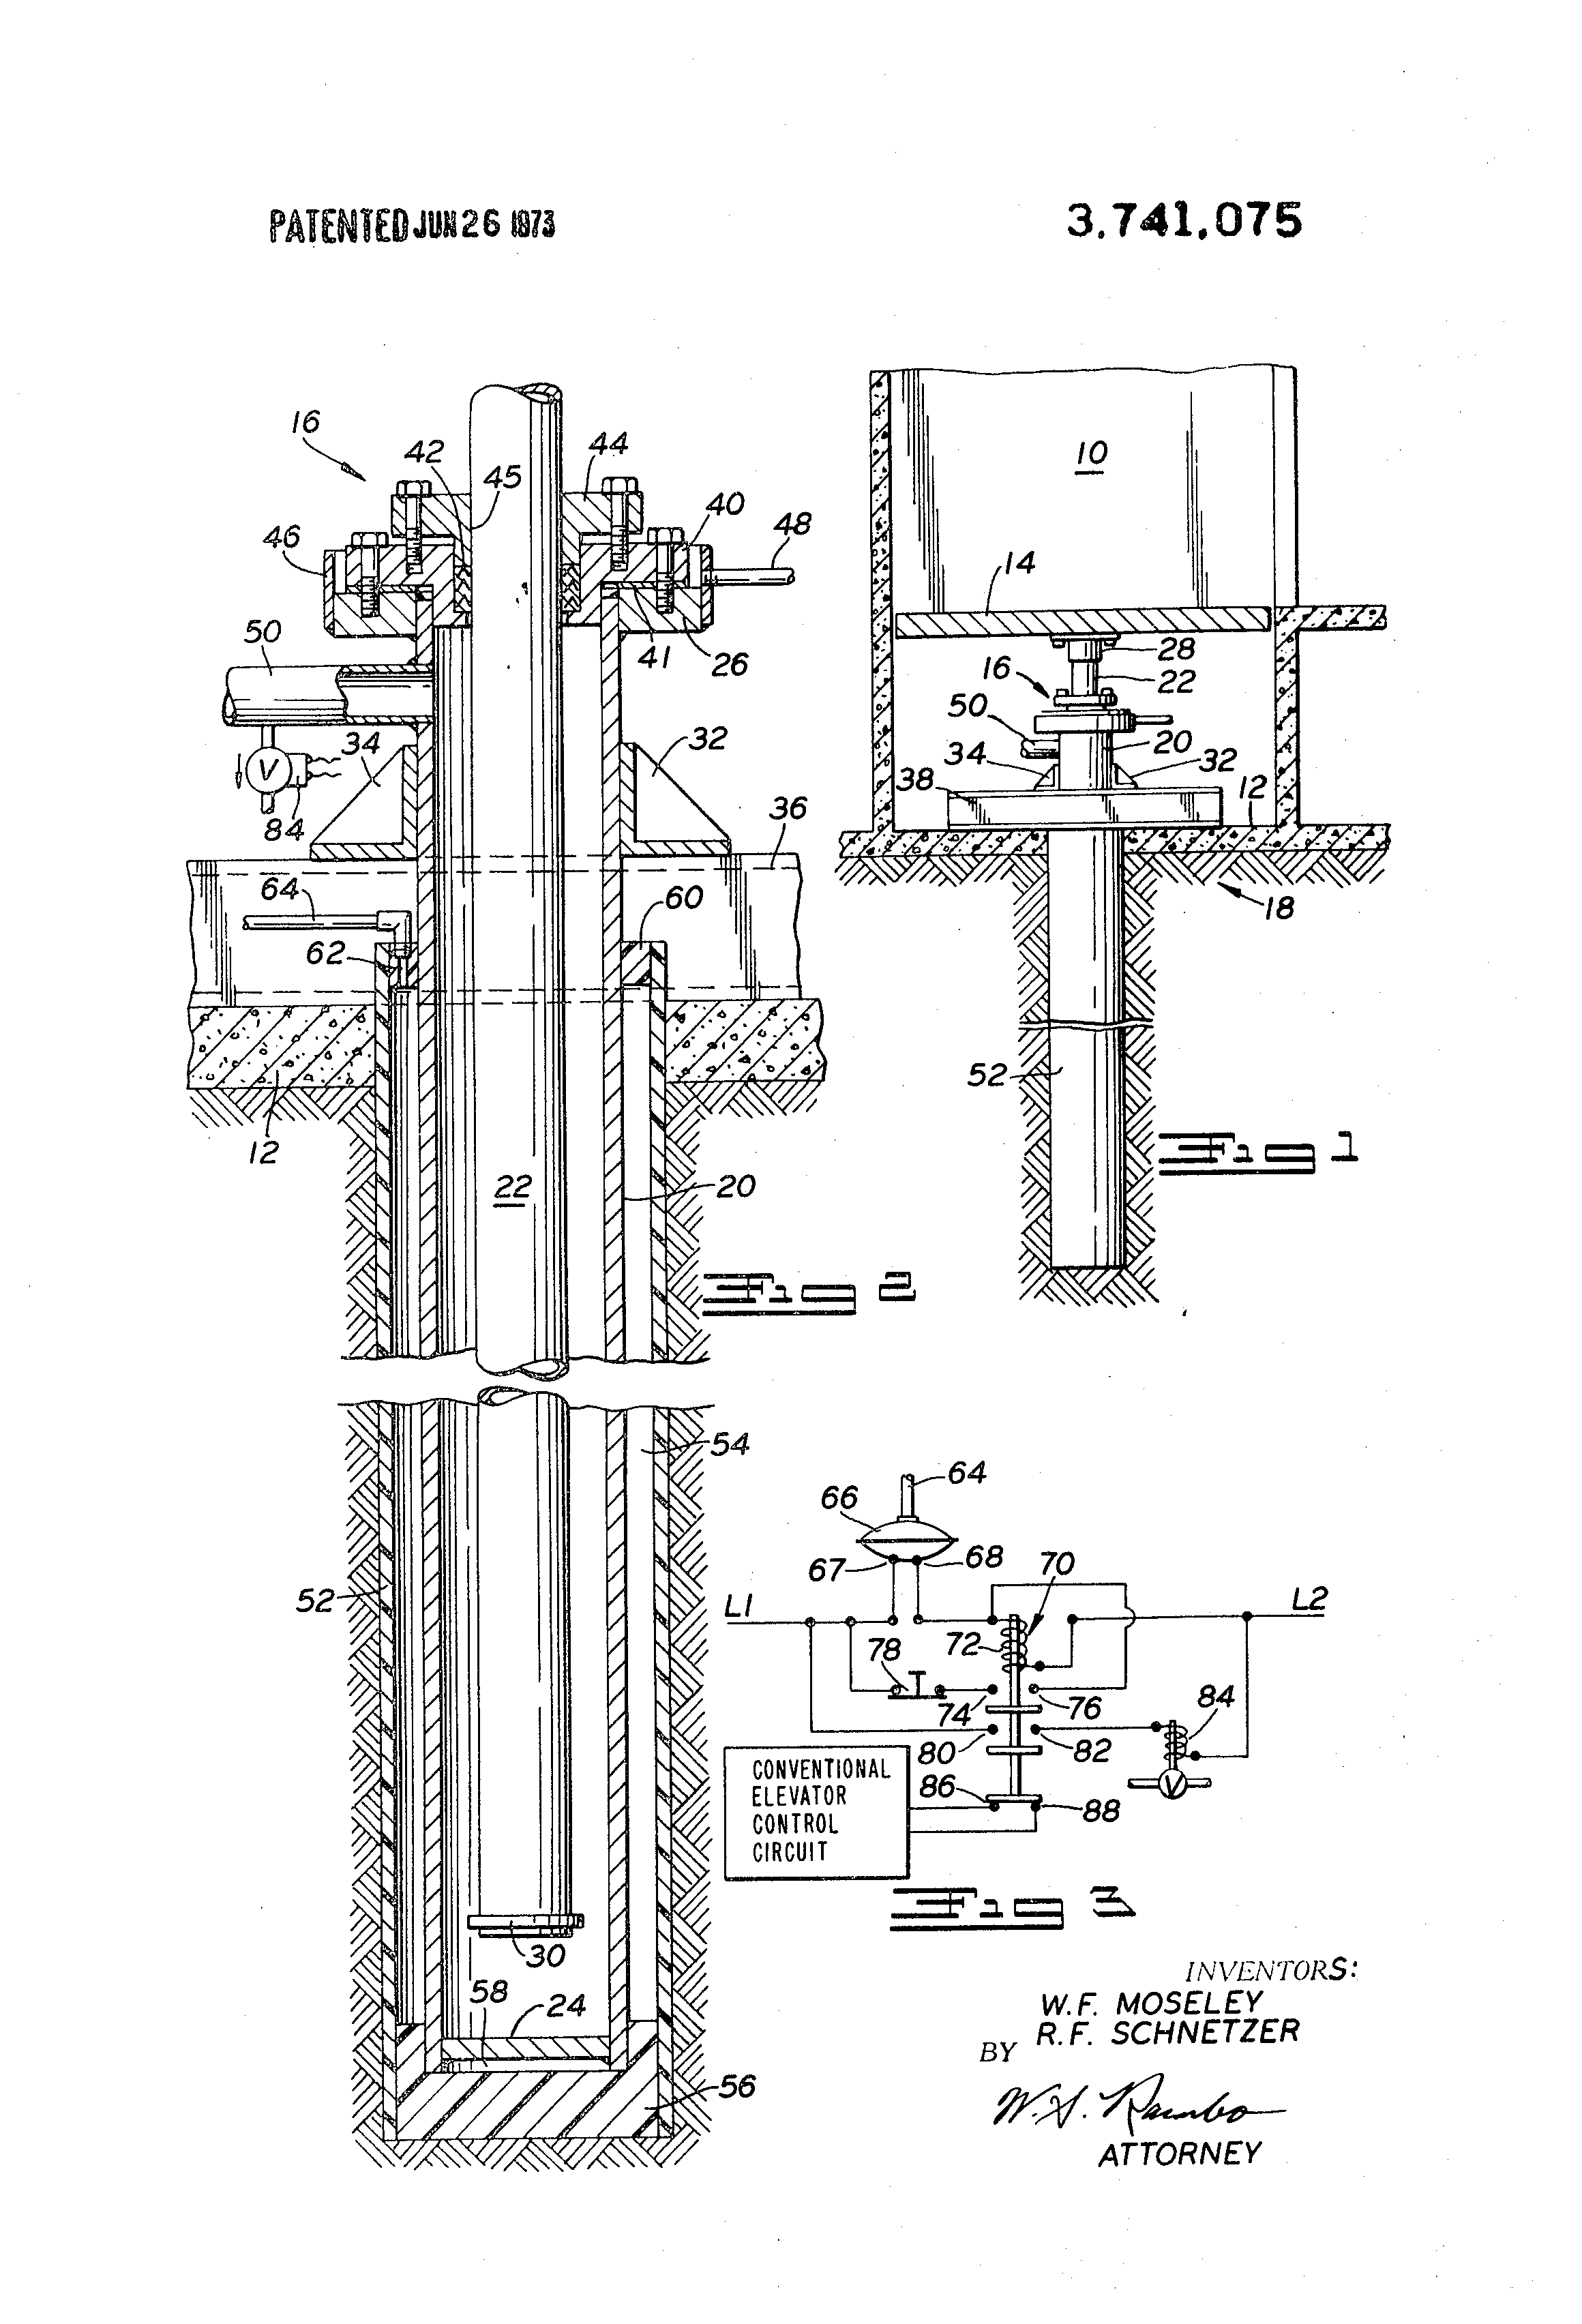 Assembling Hydraulic Elevator System : Patent us safety apparatus for hydraulic elevator